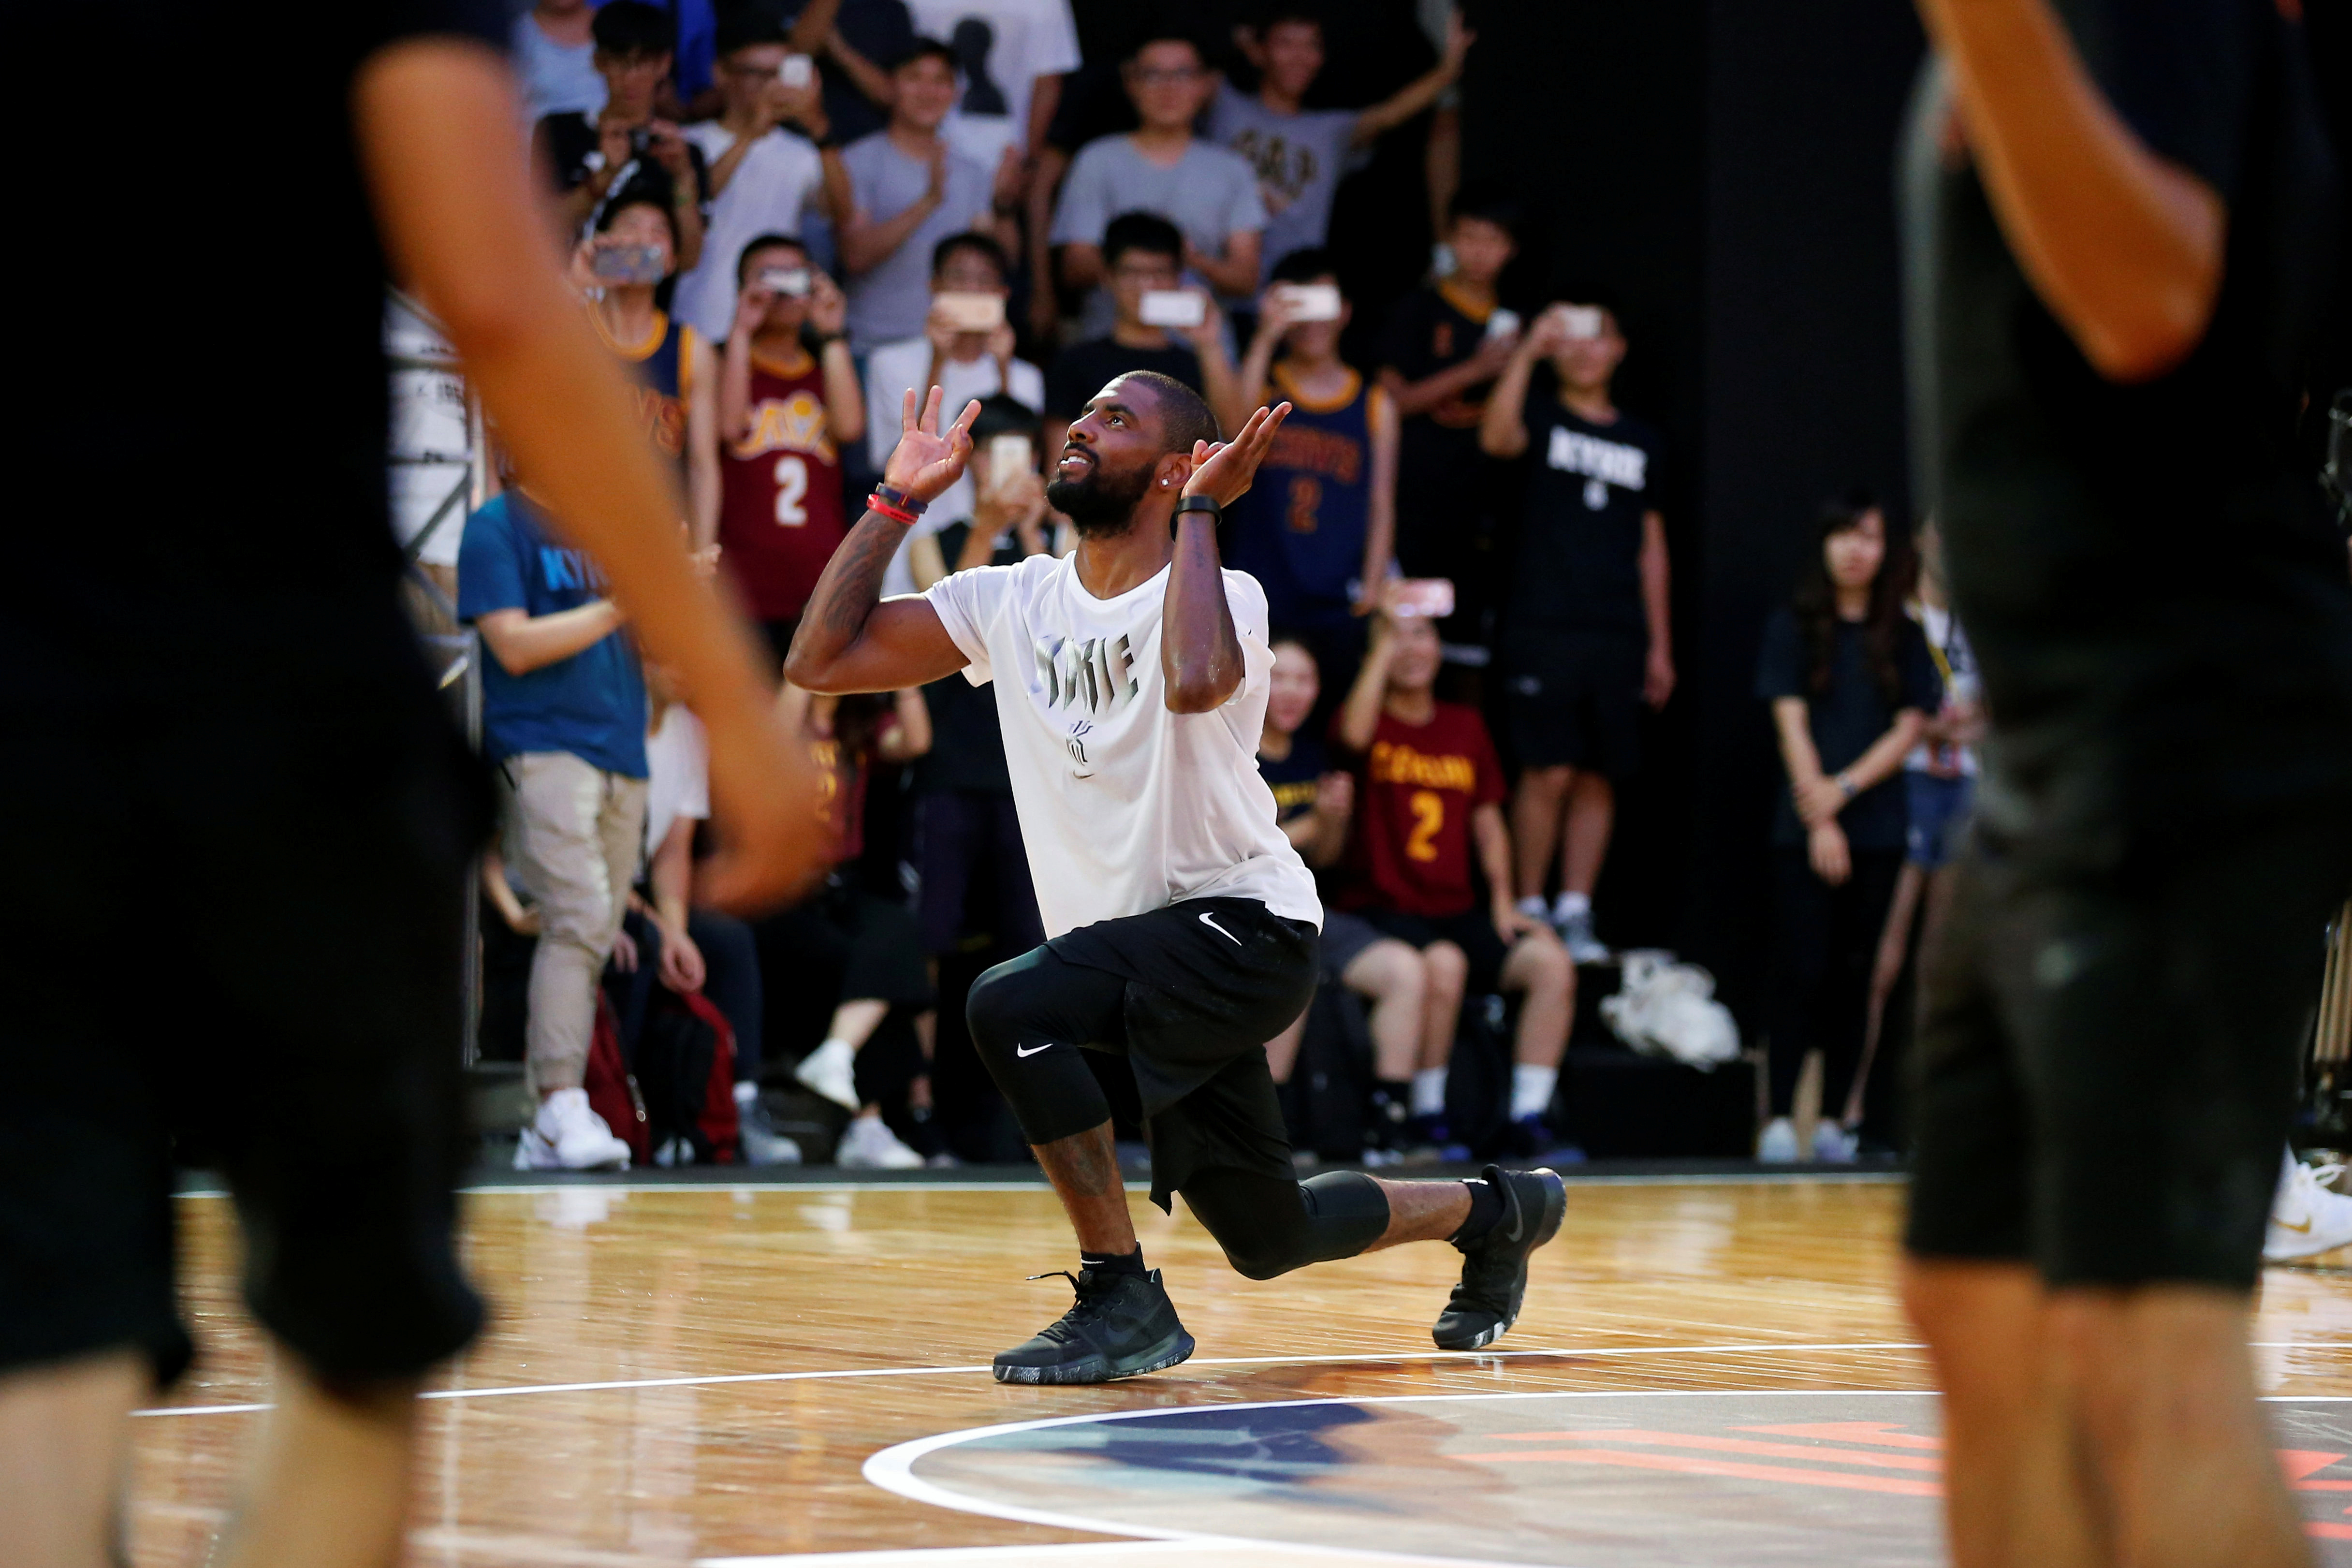 NBA player Kyrie Irving of the Cleveland Cavaliers, reacts during a promotional event in Taipei, Taiwan July 22, 2017. REUTERS/Tyrone Siu